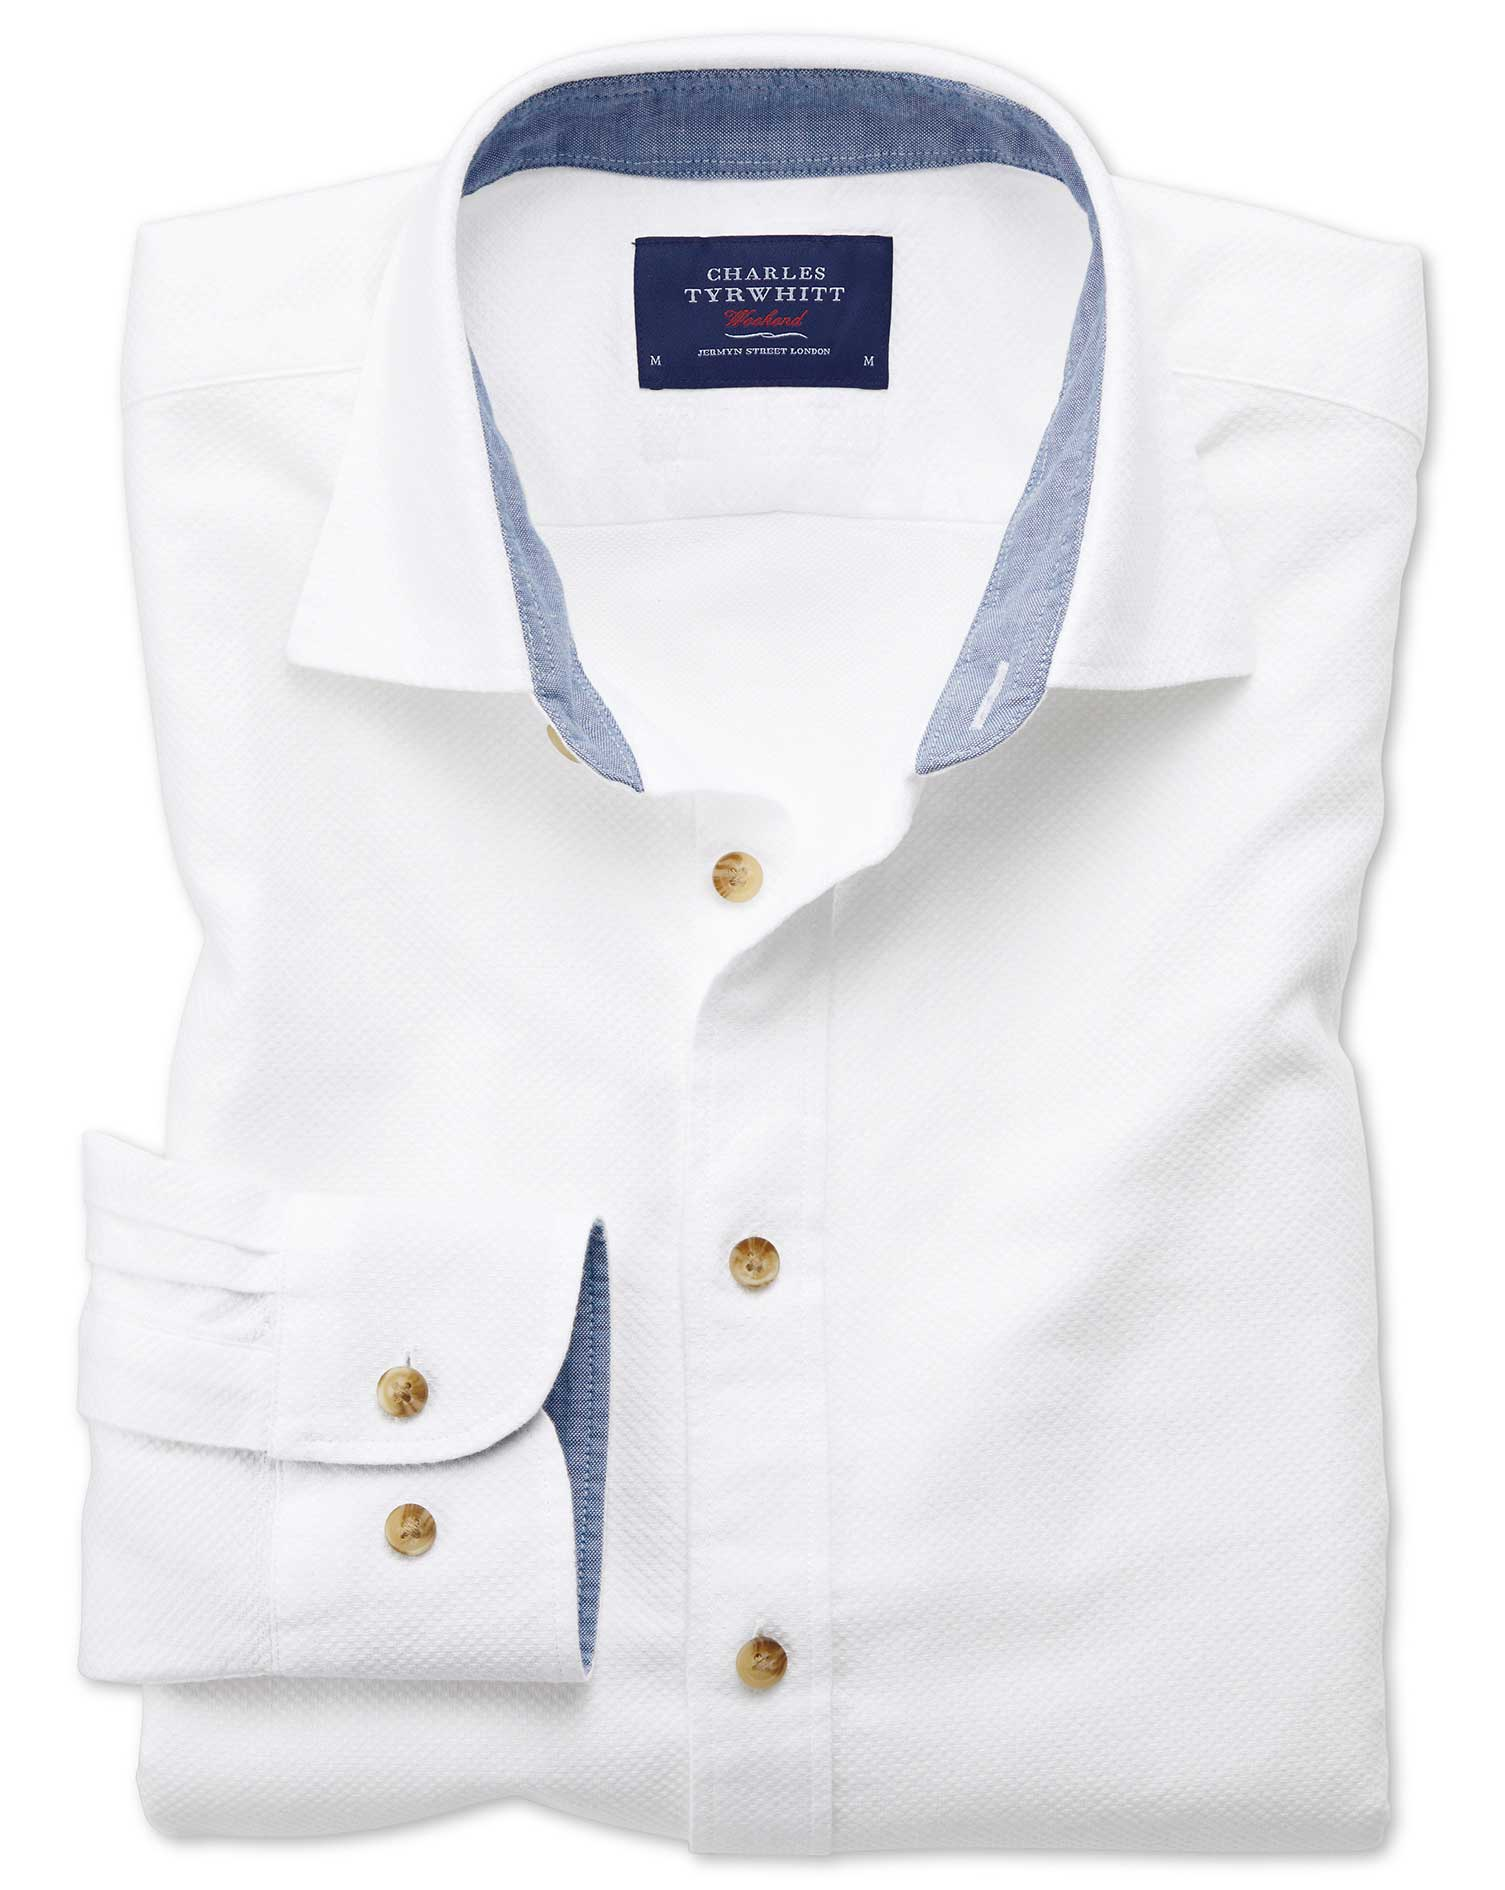 Classic Fit Washed Textured White Cotton Shirt Single Cuff Size Medium by Charles Tyrwhitt